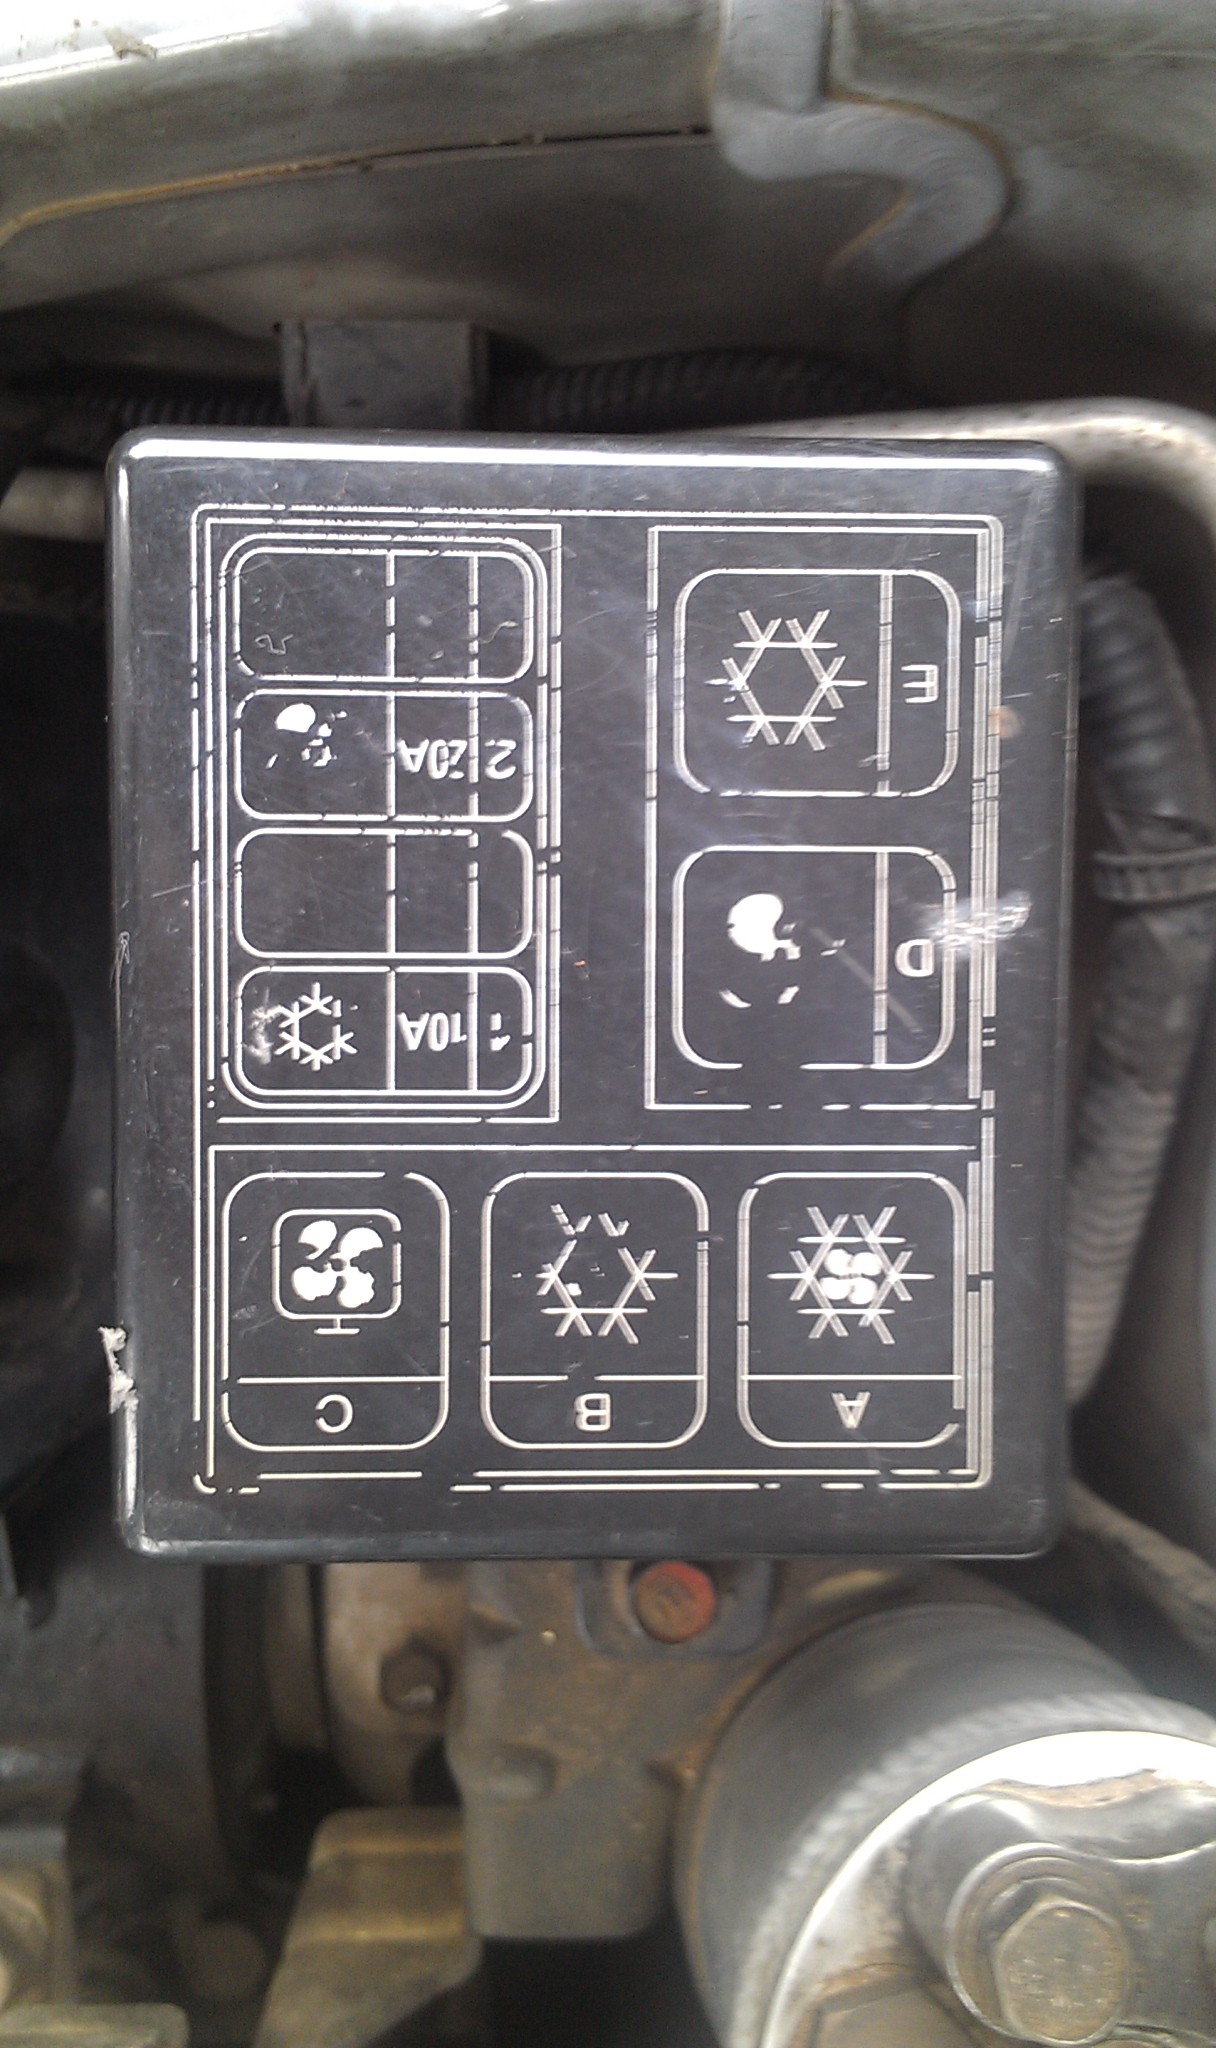 hight resolution of 2011 mitsubishi lancer fuse box diagram